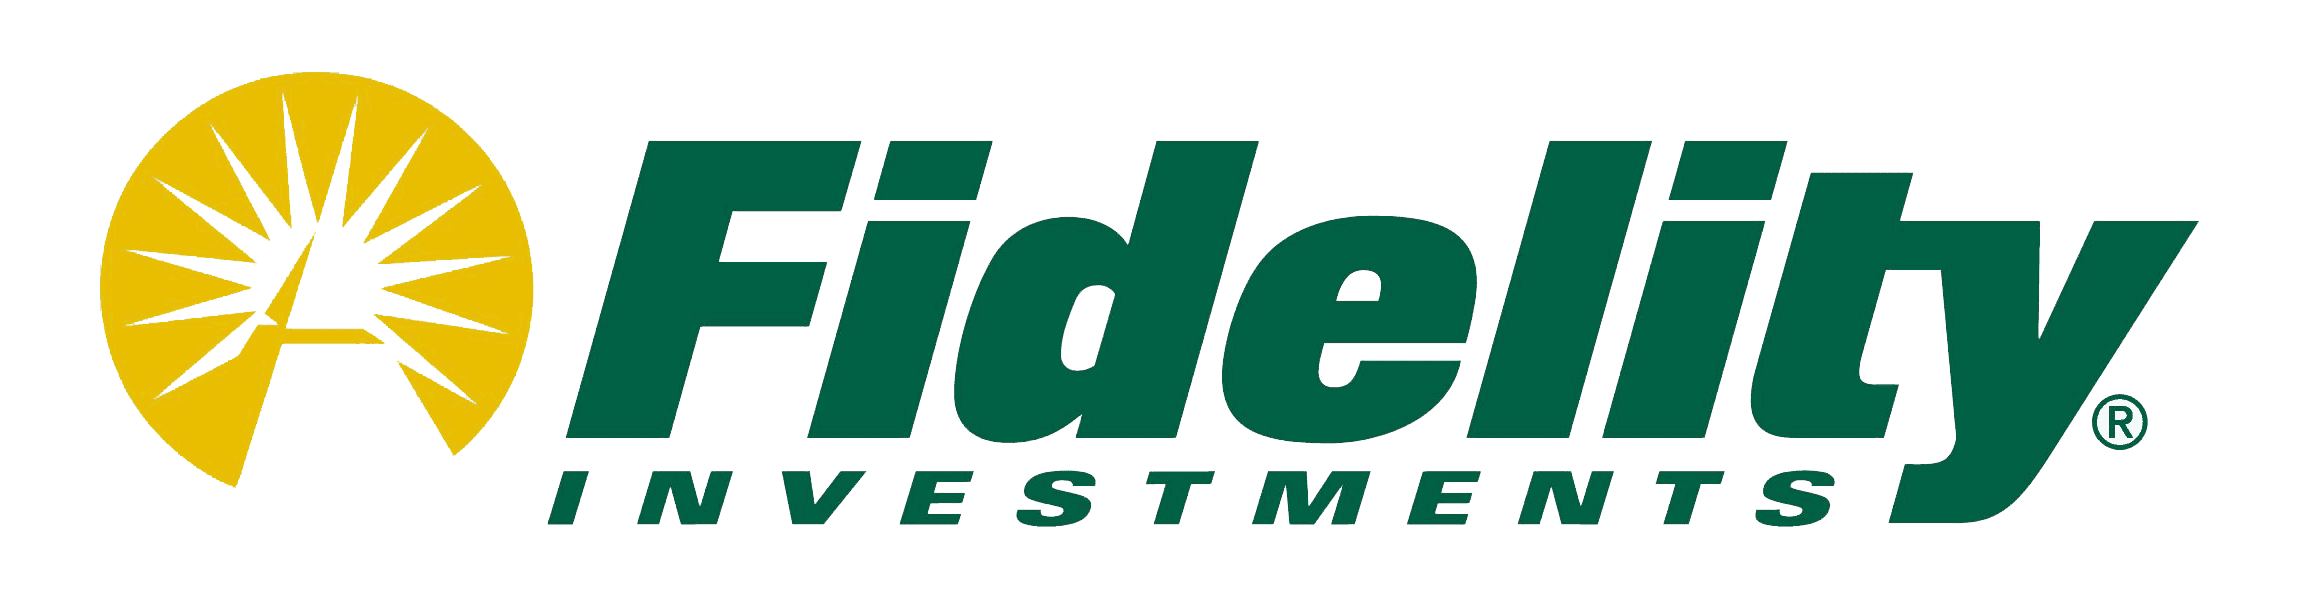 Fidelity Investments trader app logo in green preceded by a bright star